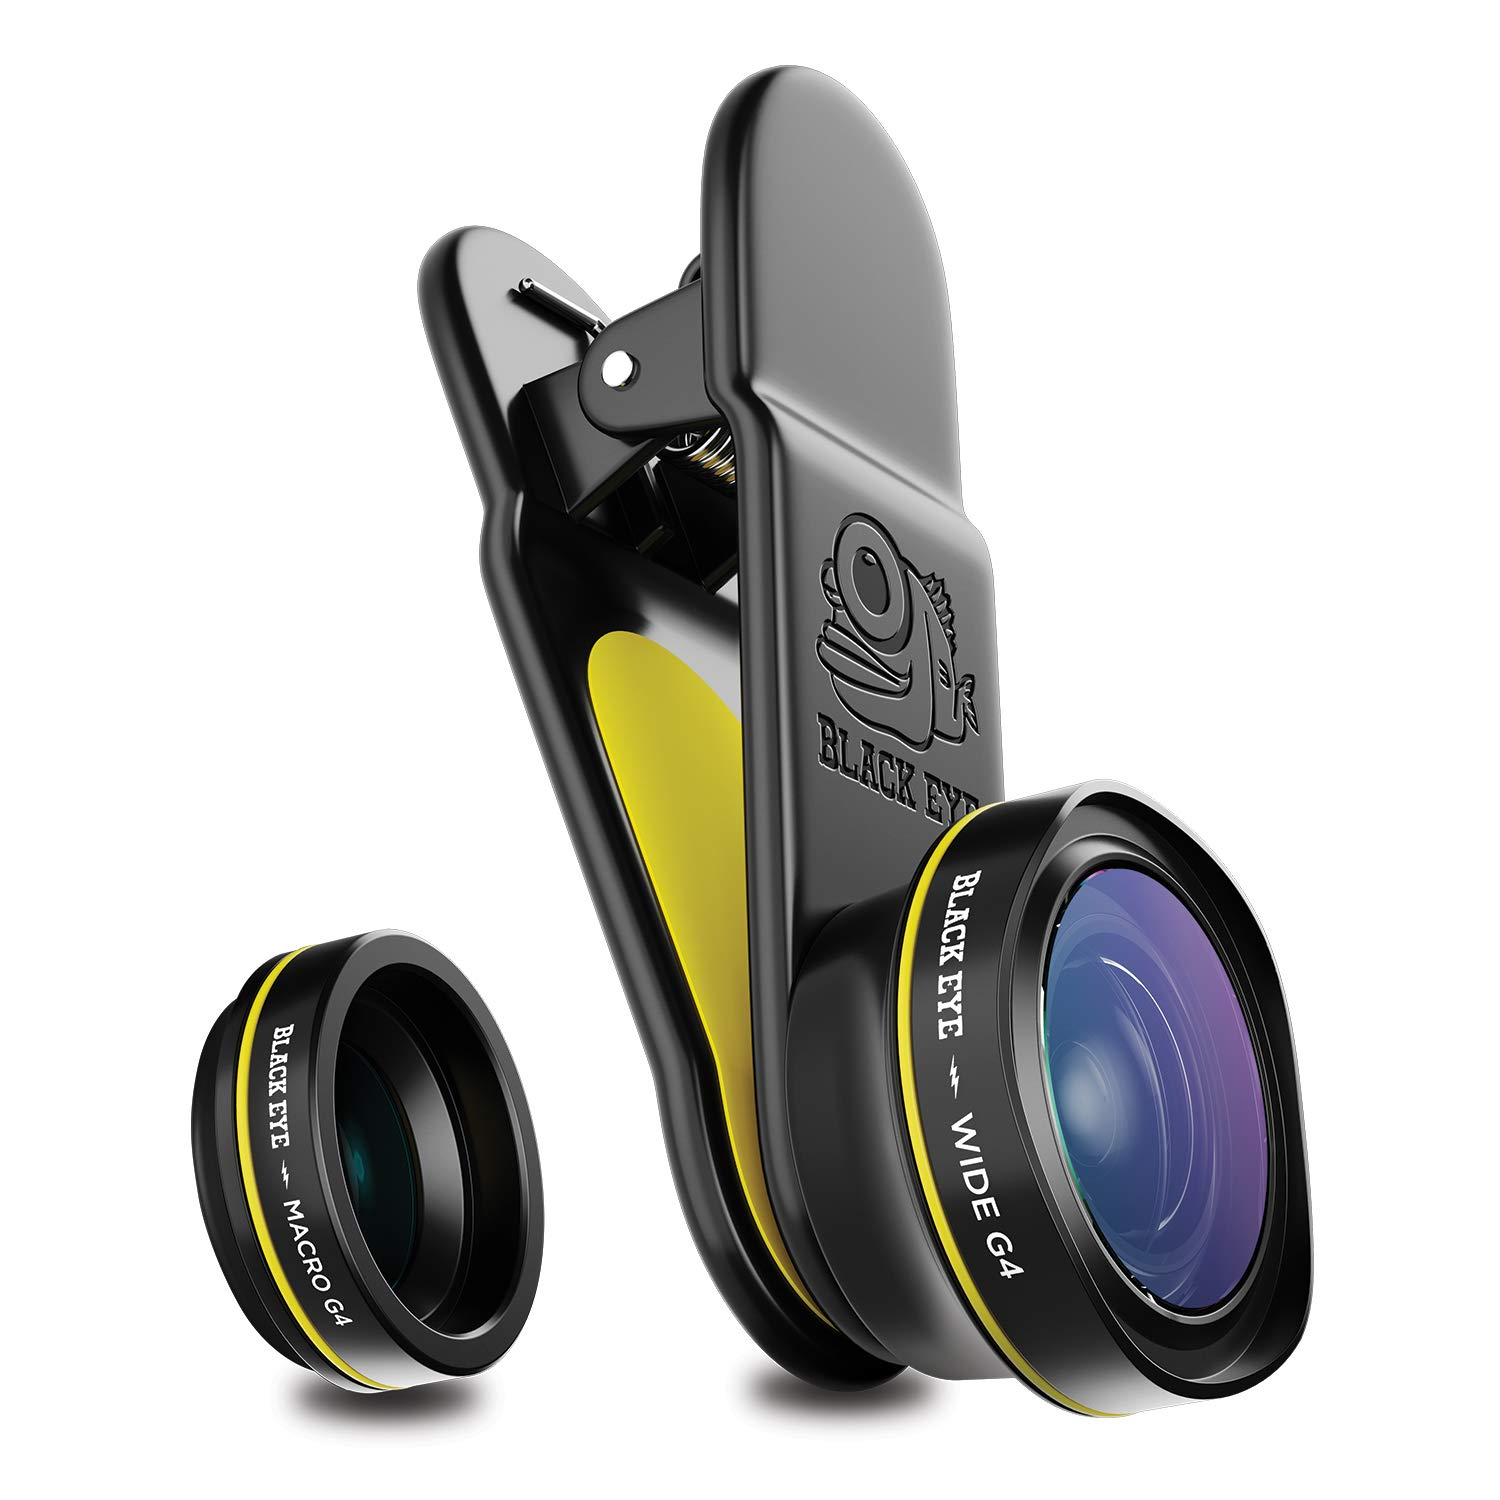 Phone Lenses by Black Eye || Combo G4 (Wide + Macro) Clip-on Lens Compatible with iPhone, iPad, Samsung Galaxy, and All Camera Phone Models by BLACK EYE